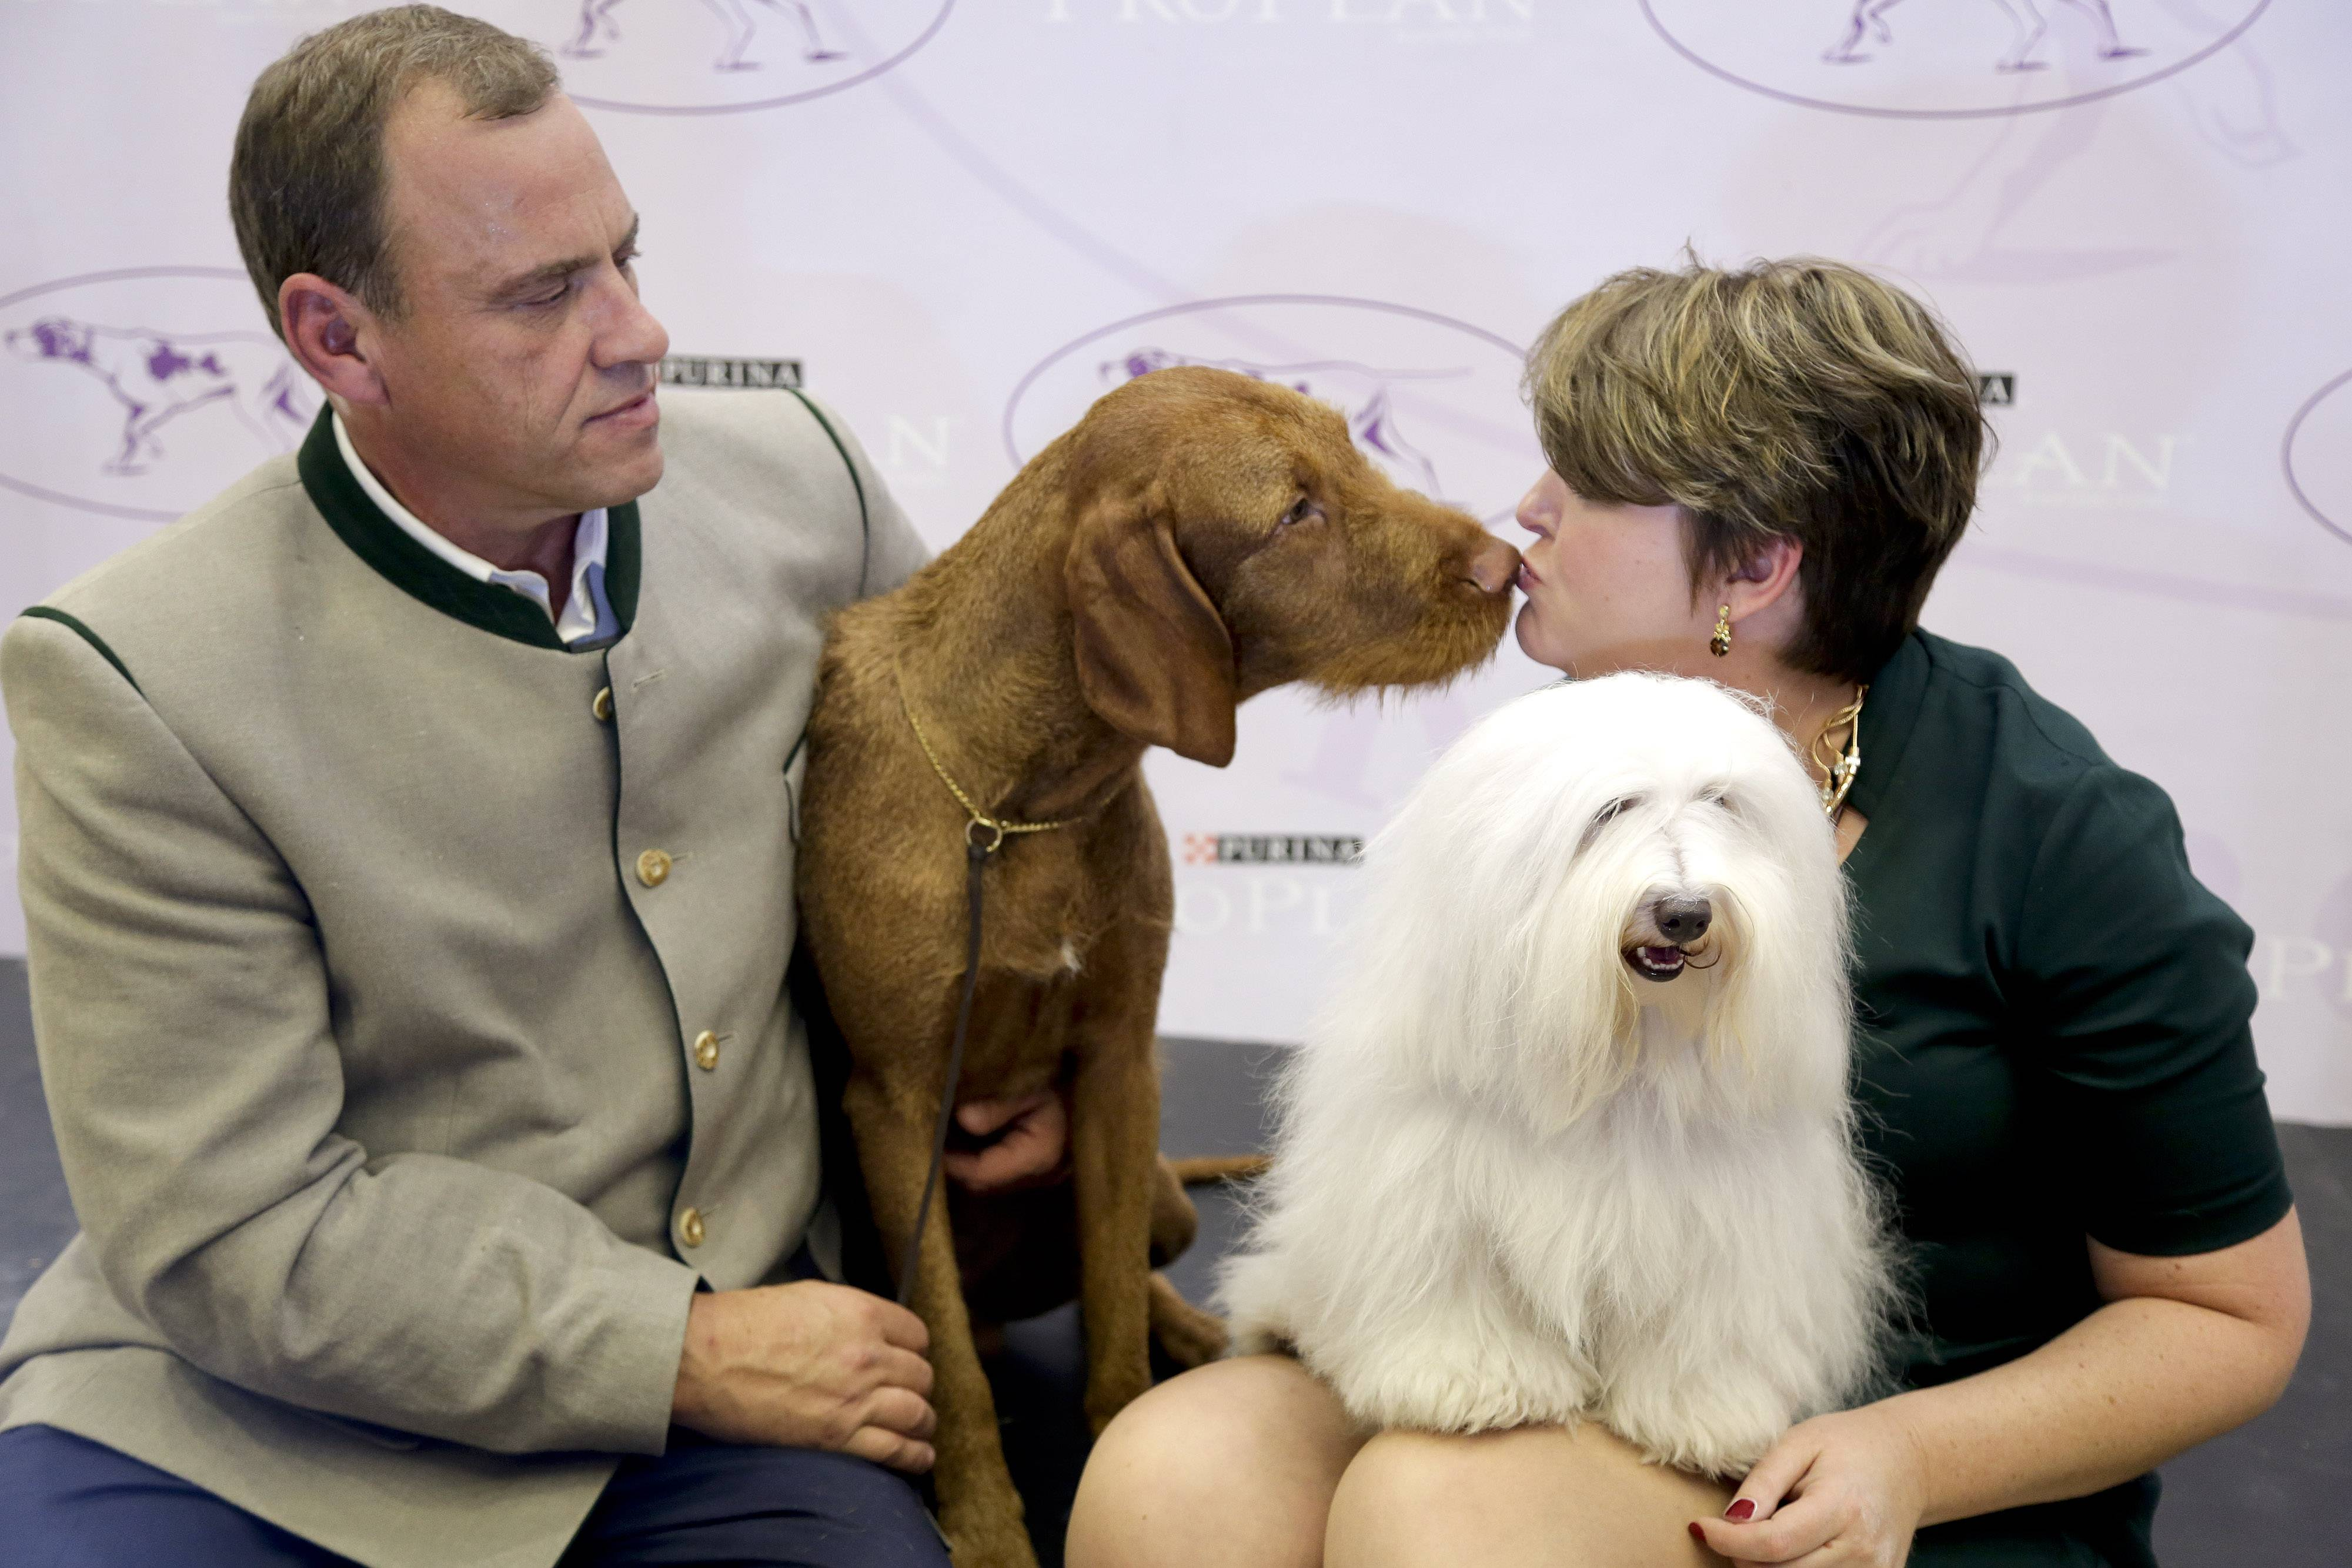 Falko, left, a wire-haired vizsla, and Luna, a cotton de tulear, sit on stage with their owners, Anton Sagh, of Montreal, Quebec, and Adrianne Dering, of Morgantown, W.Va., during a news conference Tuesday in New York. The Westminster Kennel Club said the two breeds will be eligible to compete for the first time in the New York show next February.